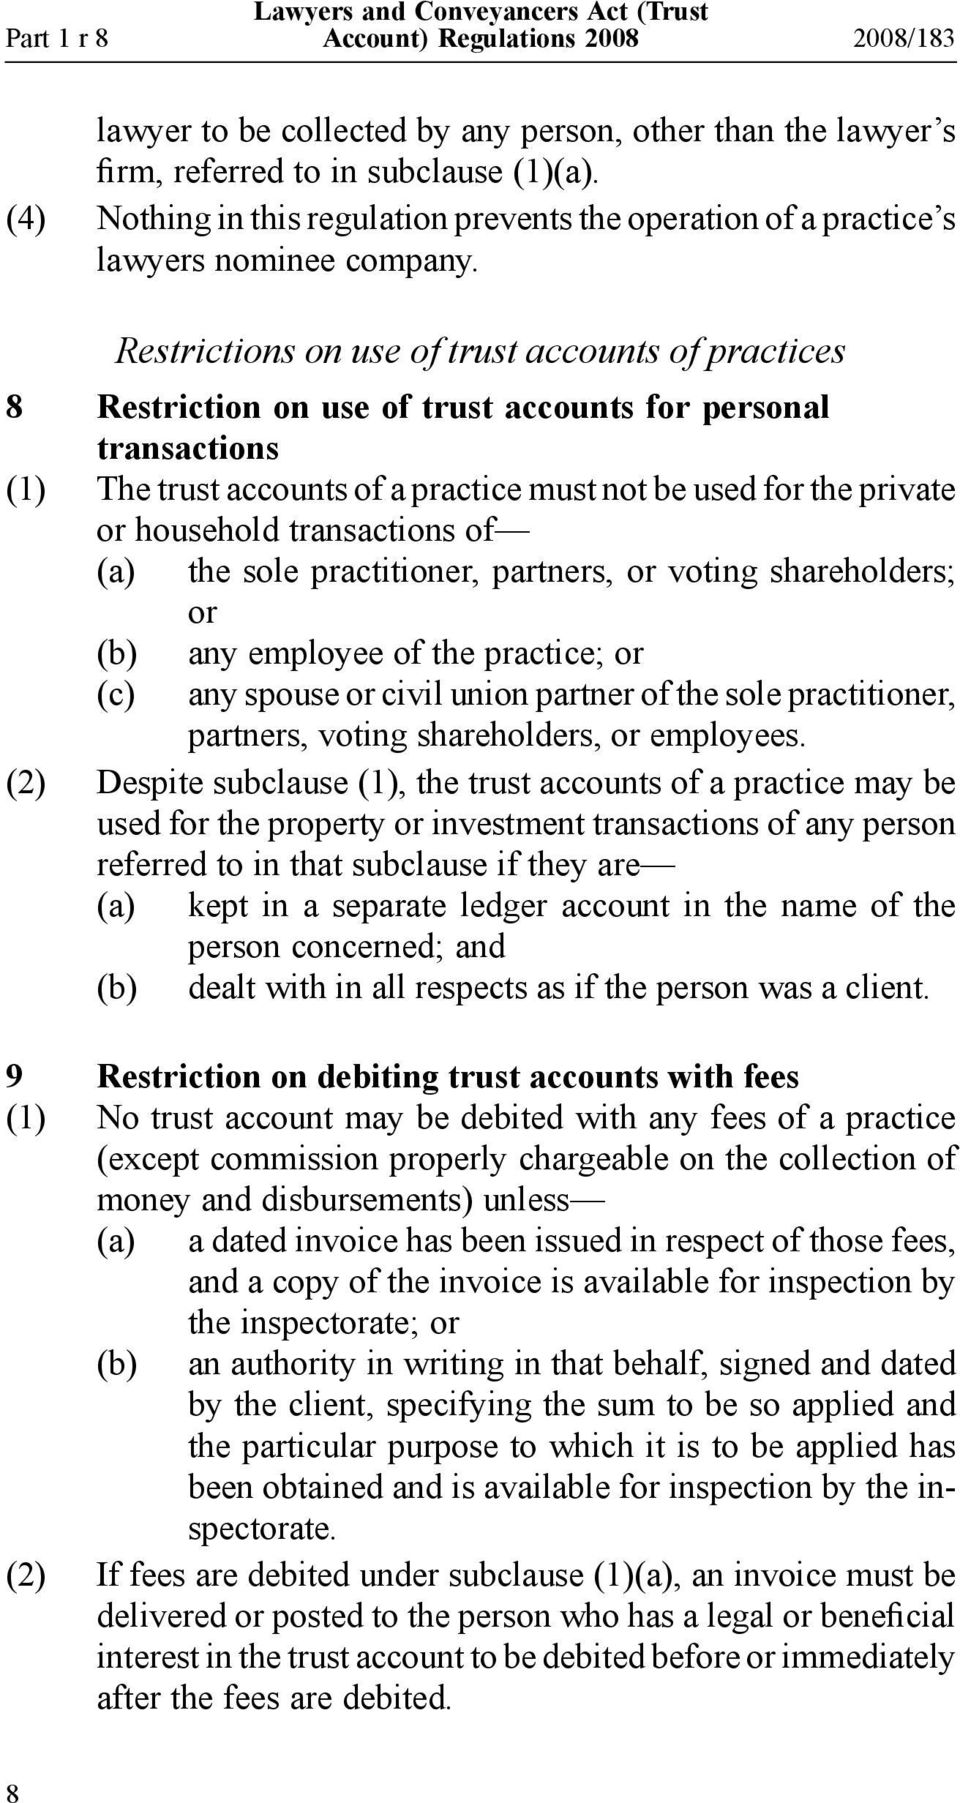 Restrictions on use of trust accounts of practices 8 Restriction on use of trust accounts for personal transactions (1) The trust accounts of a practice must not be used for the private or household